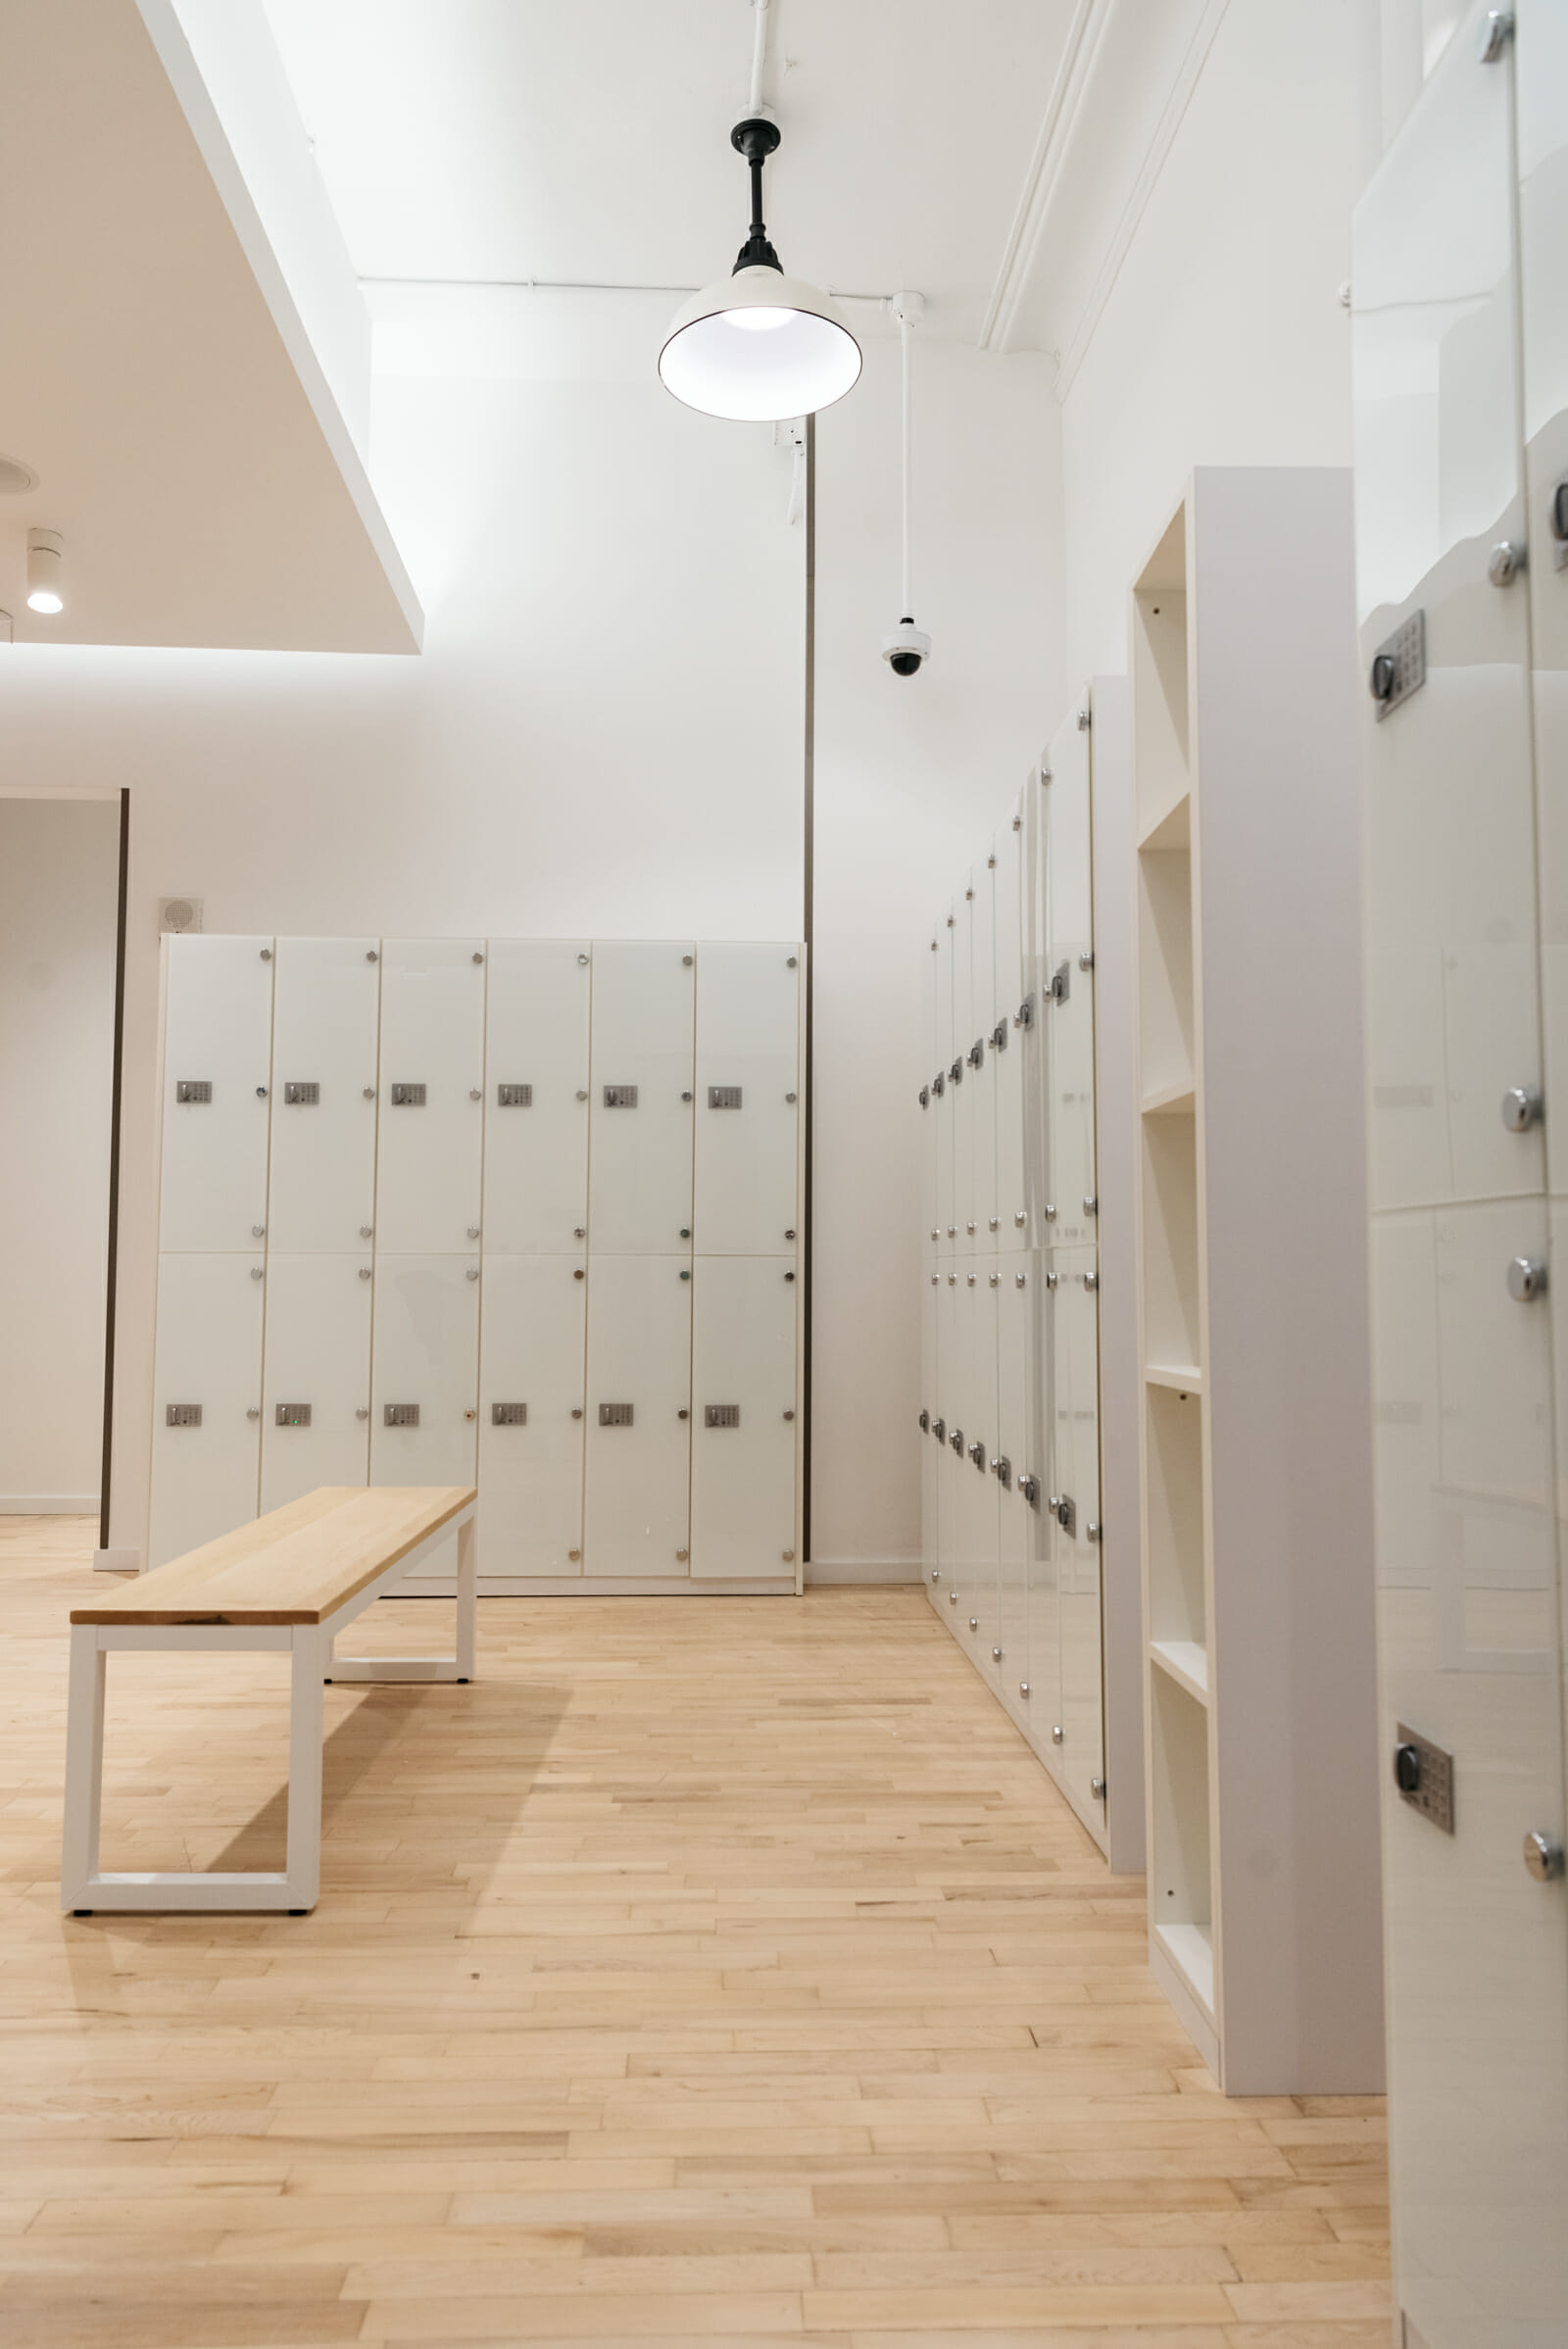 Gym lockers with Becode lock system